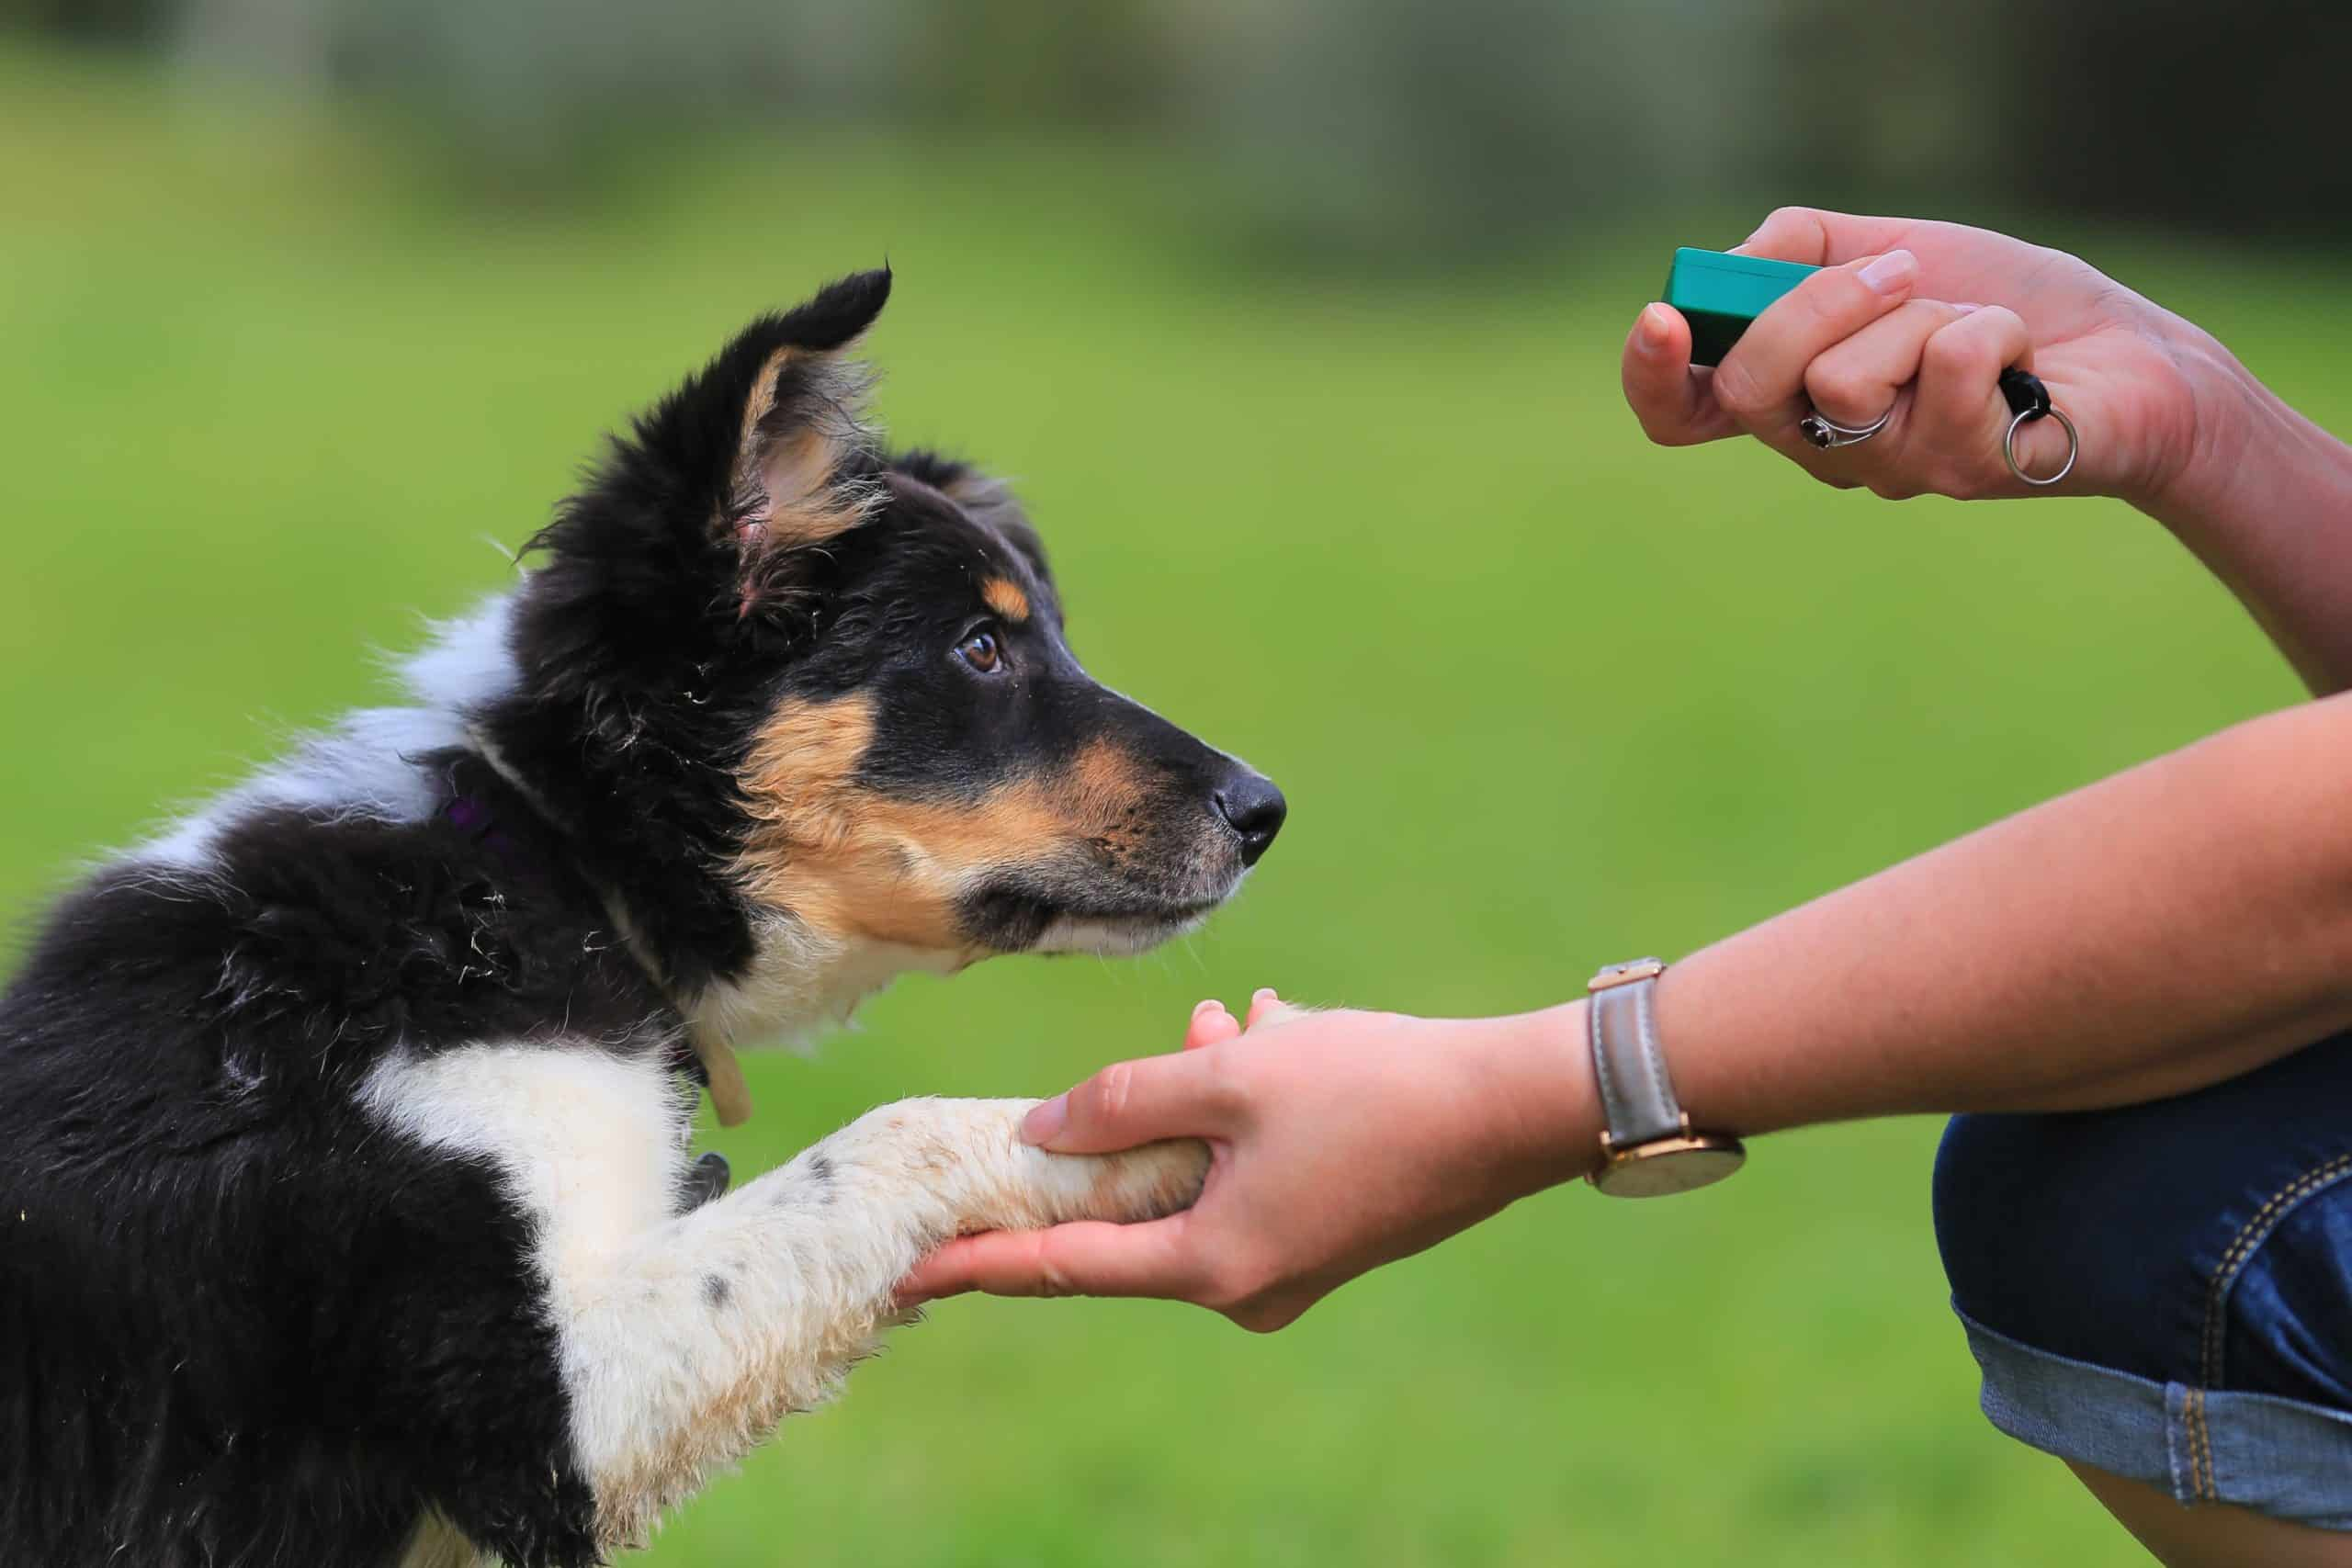 Owner trains dog using a clicker. If your dog is not motivated by food, get a little more creative in how you reward your dog. Try praising your dog or use a clicker to reinforce good behavior.